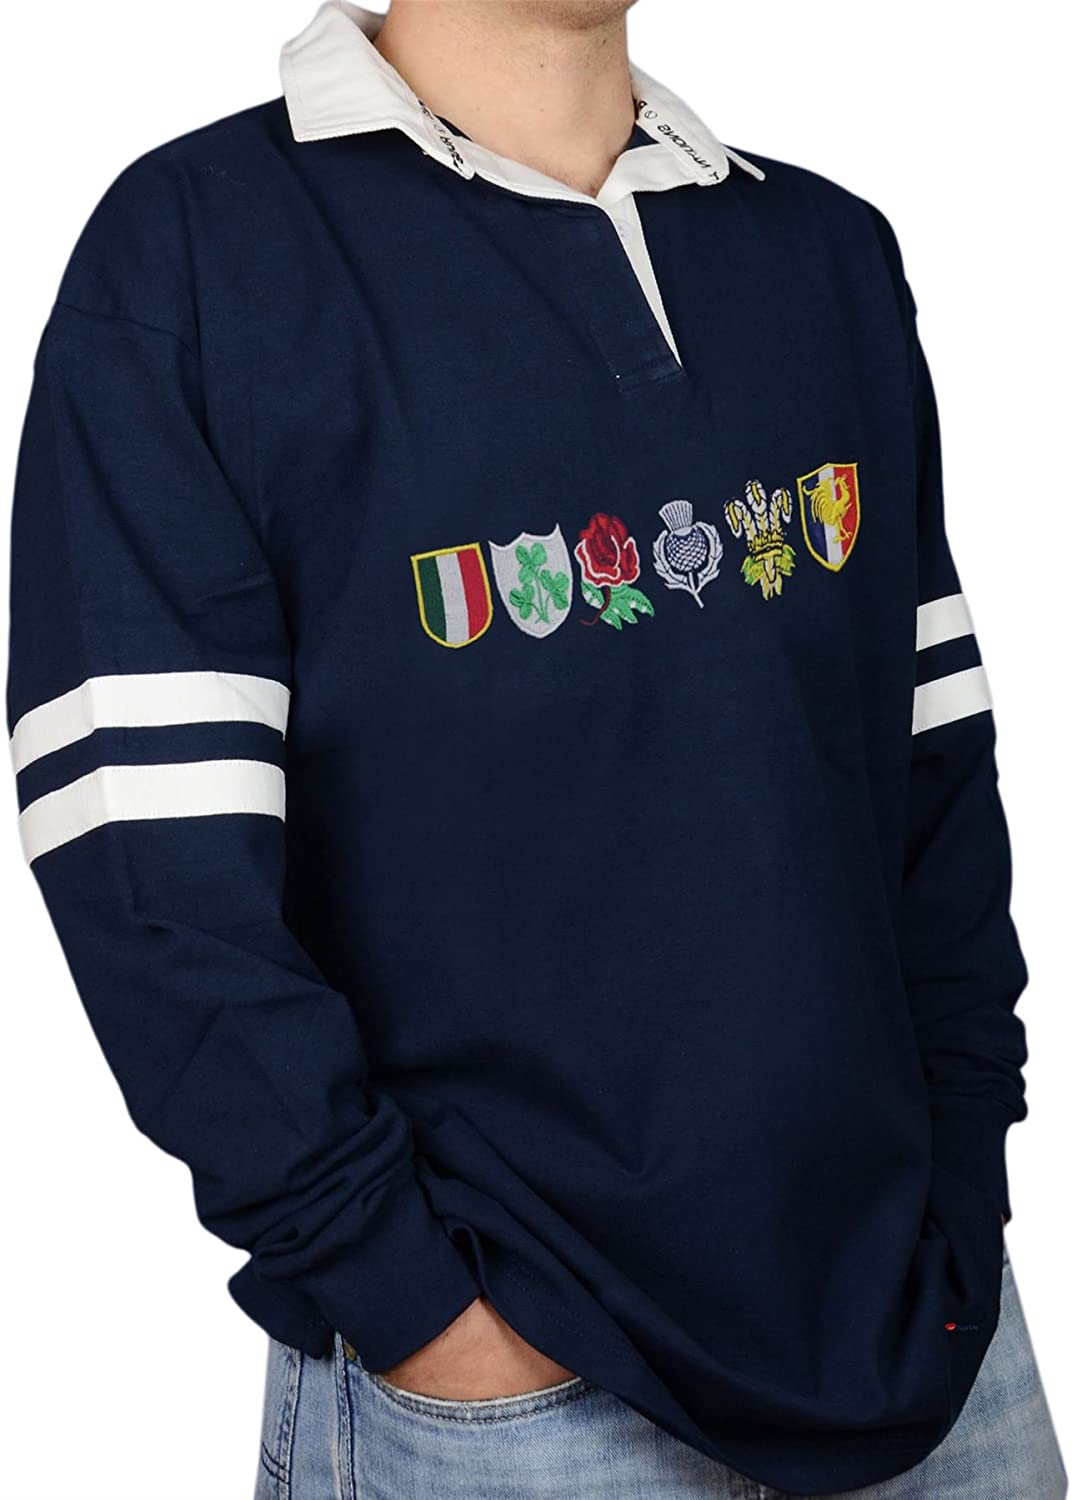 Rugby Shirt Six Nations option